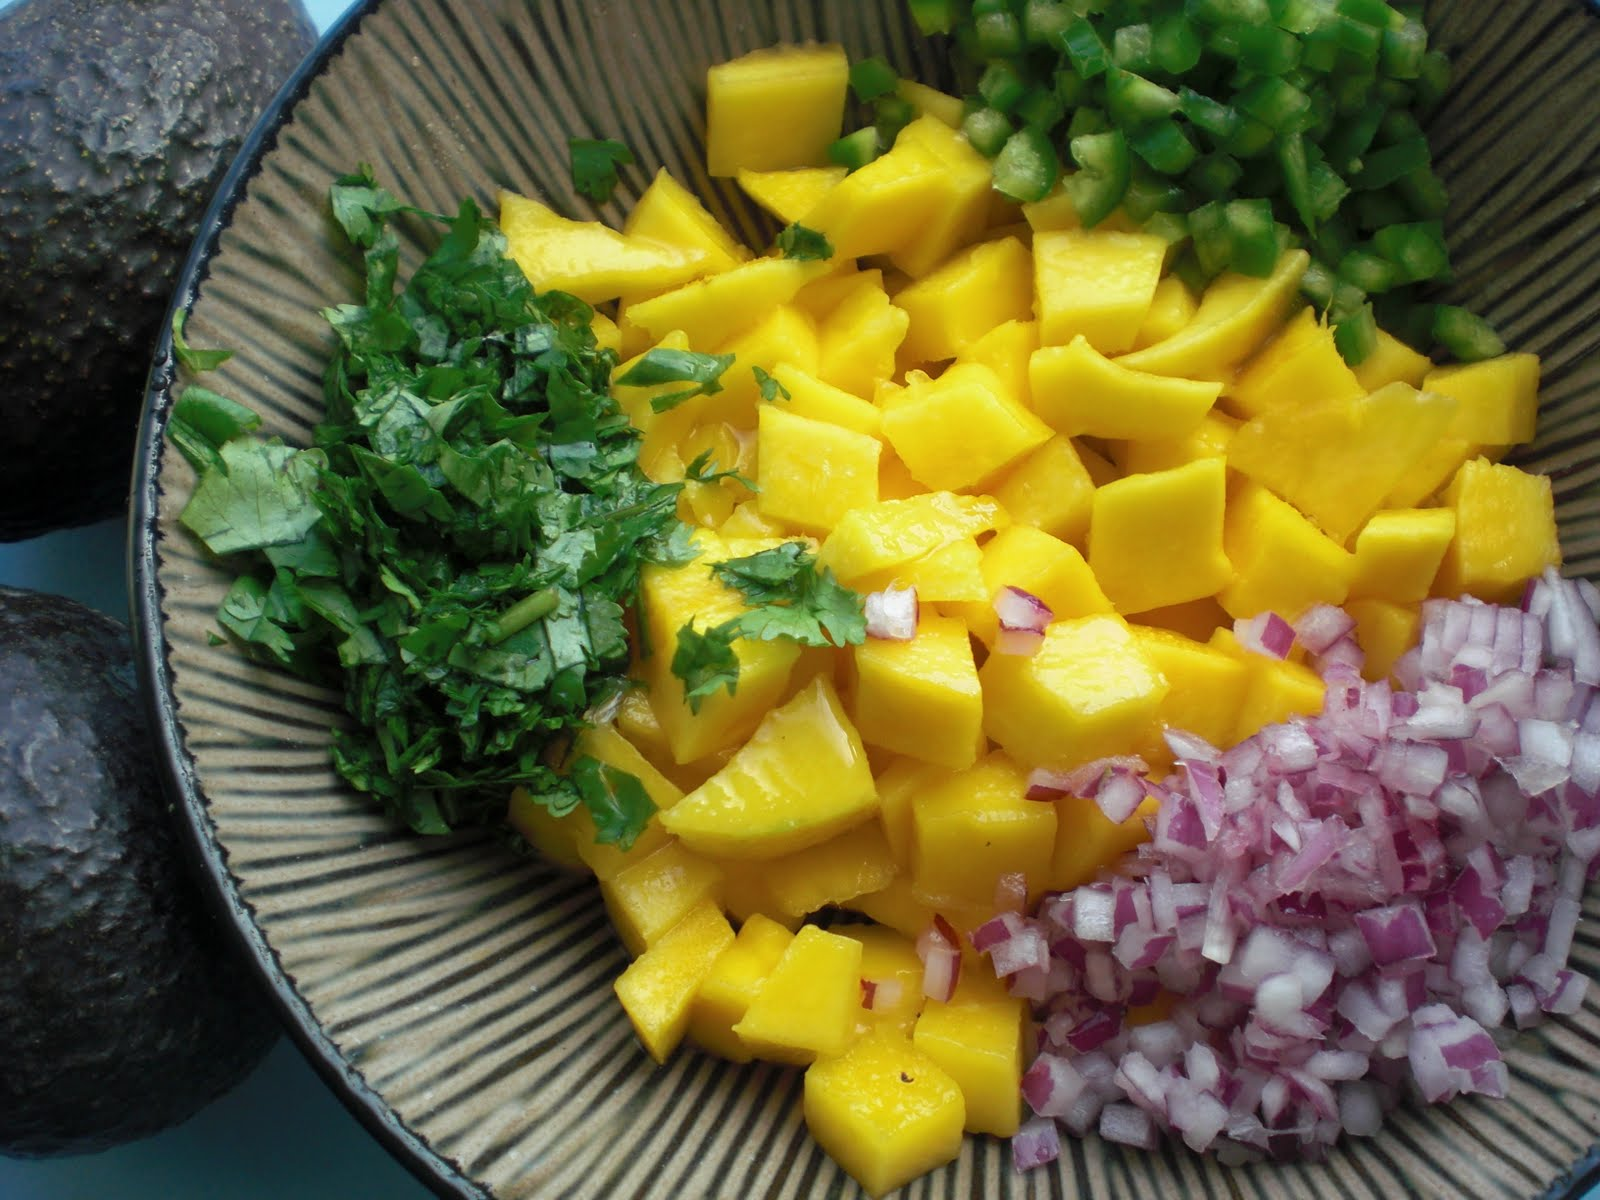 ... zucchini, sweet corn, black beans, spices, cilantro, and lime juice